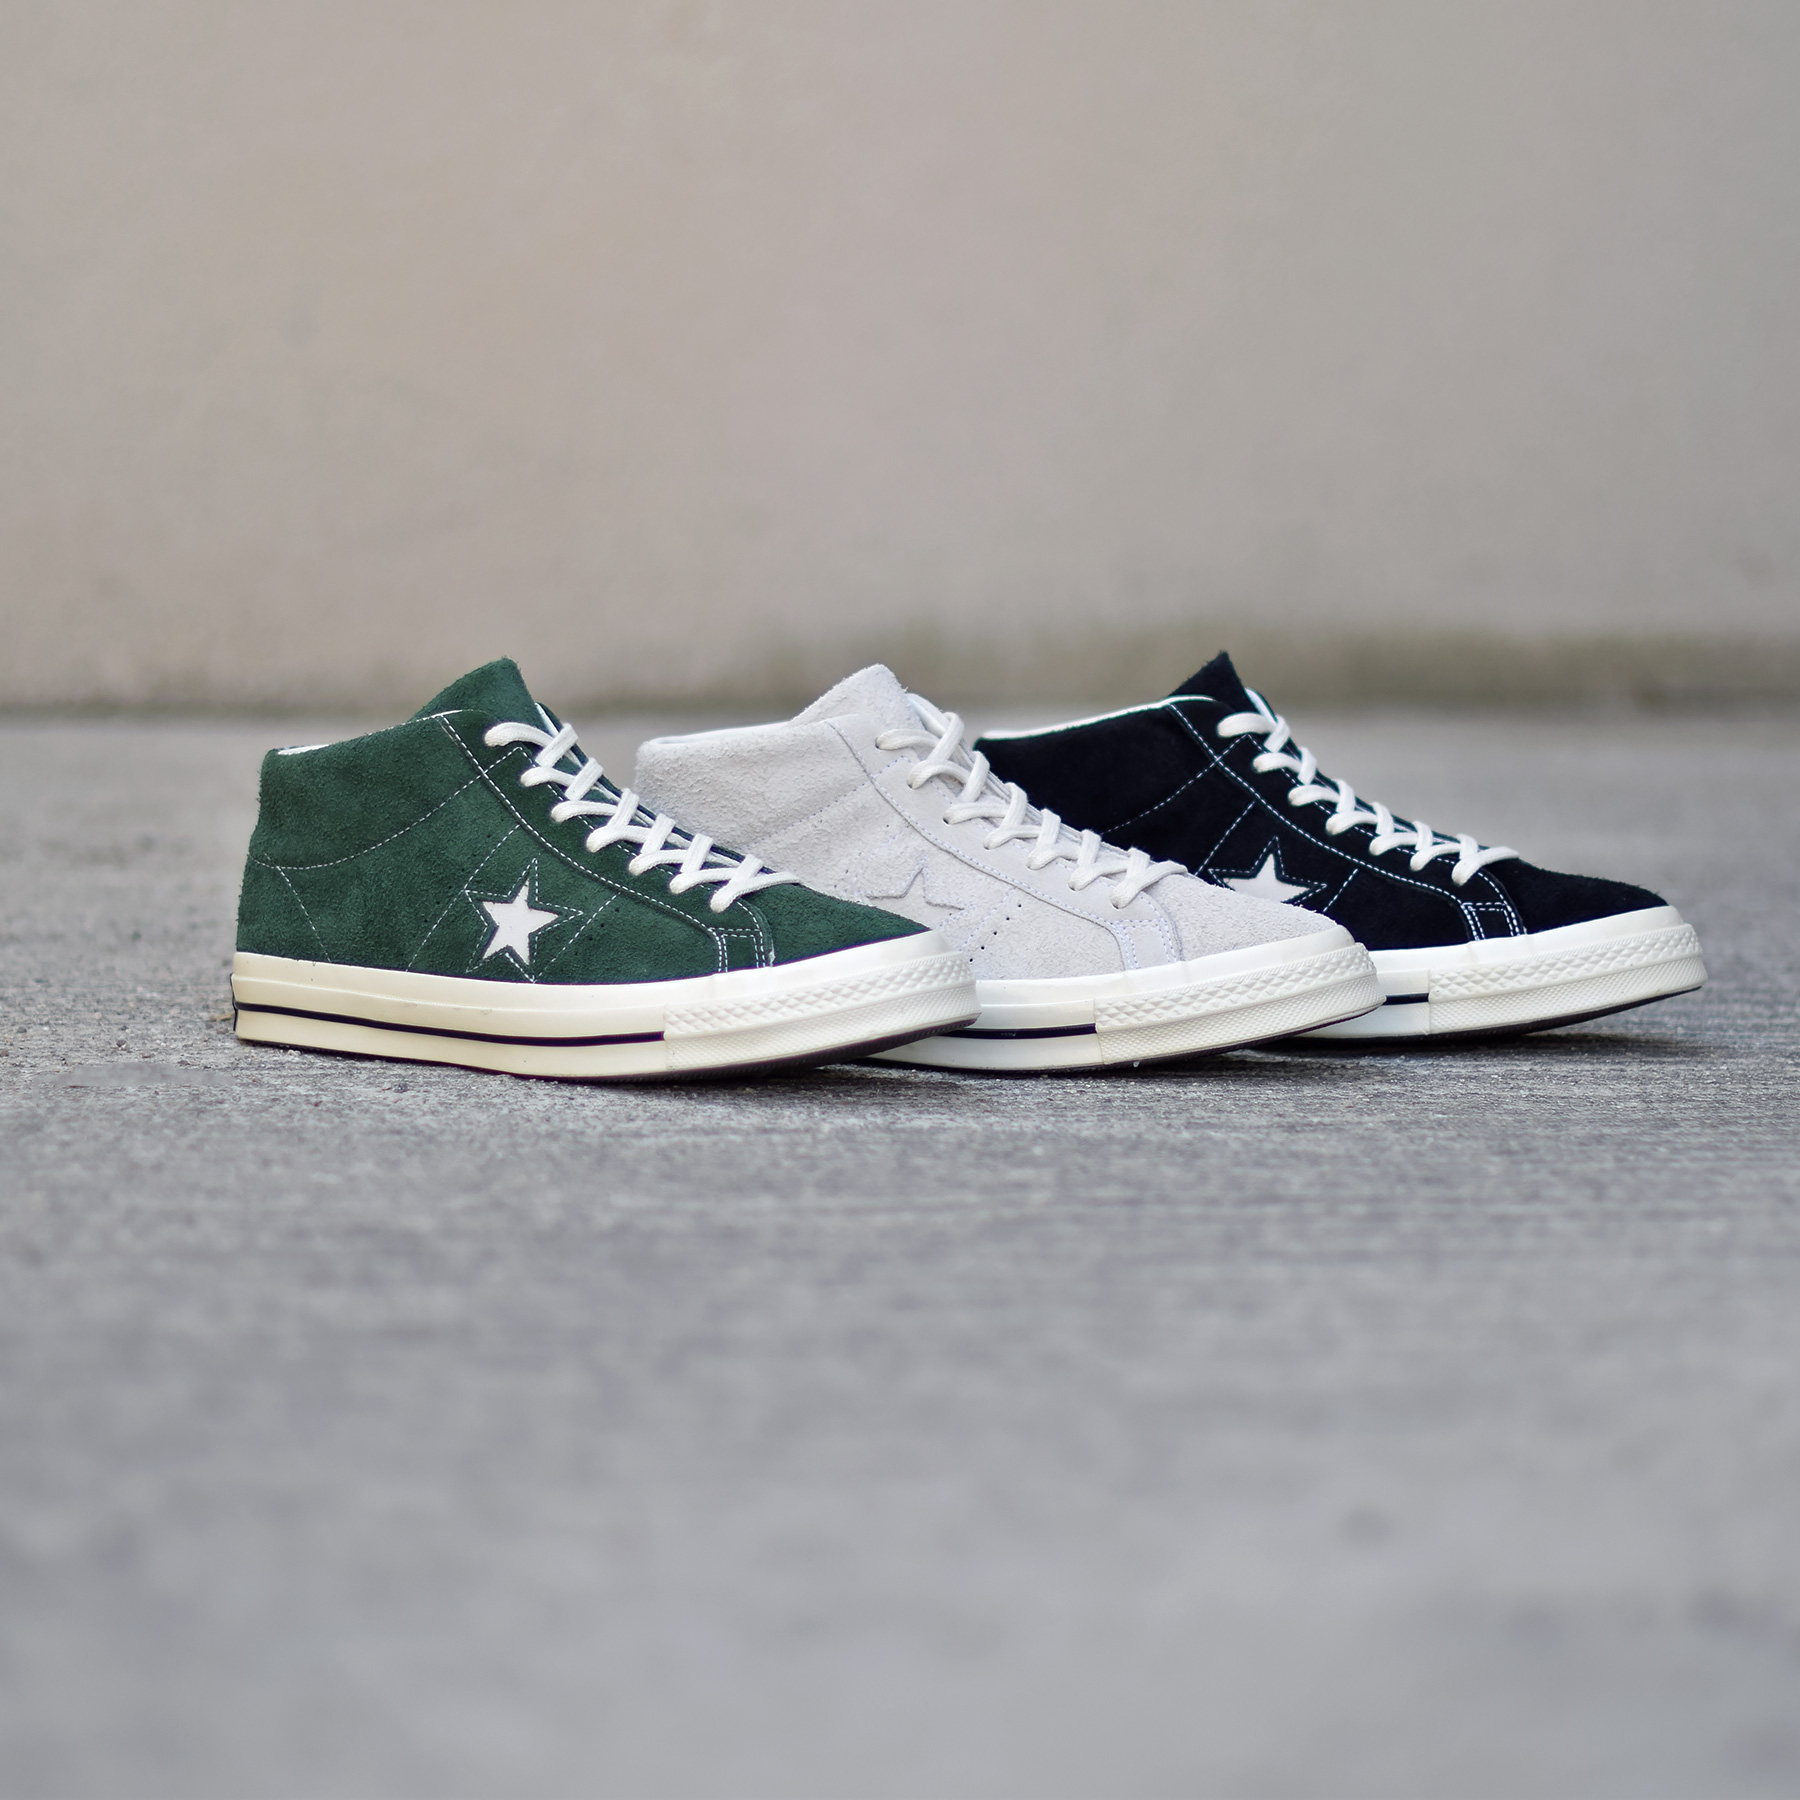 a298bf9a2d1f5 Converse One Star Mid Suede Pack - Sneakers.fr